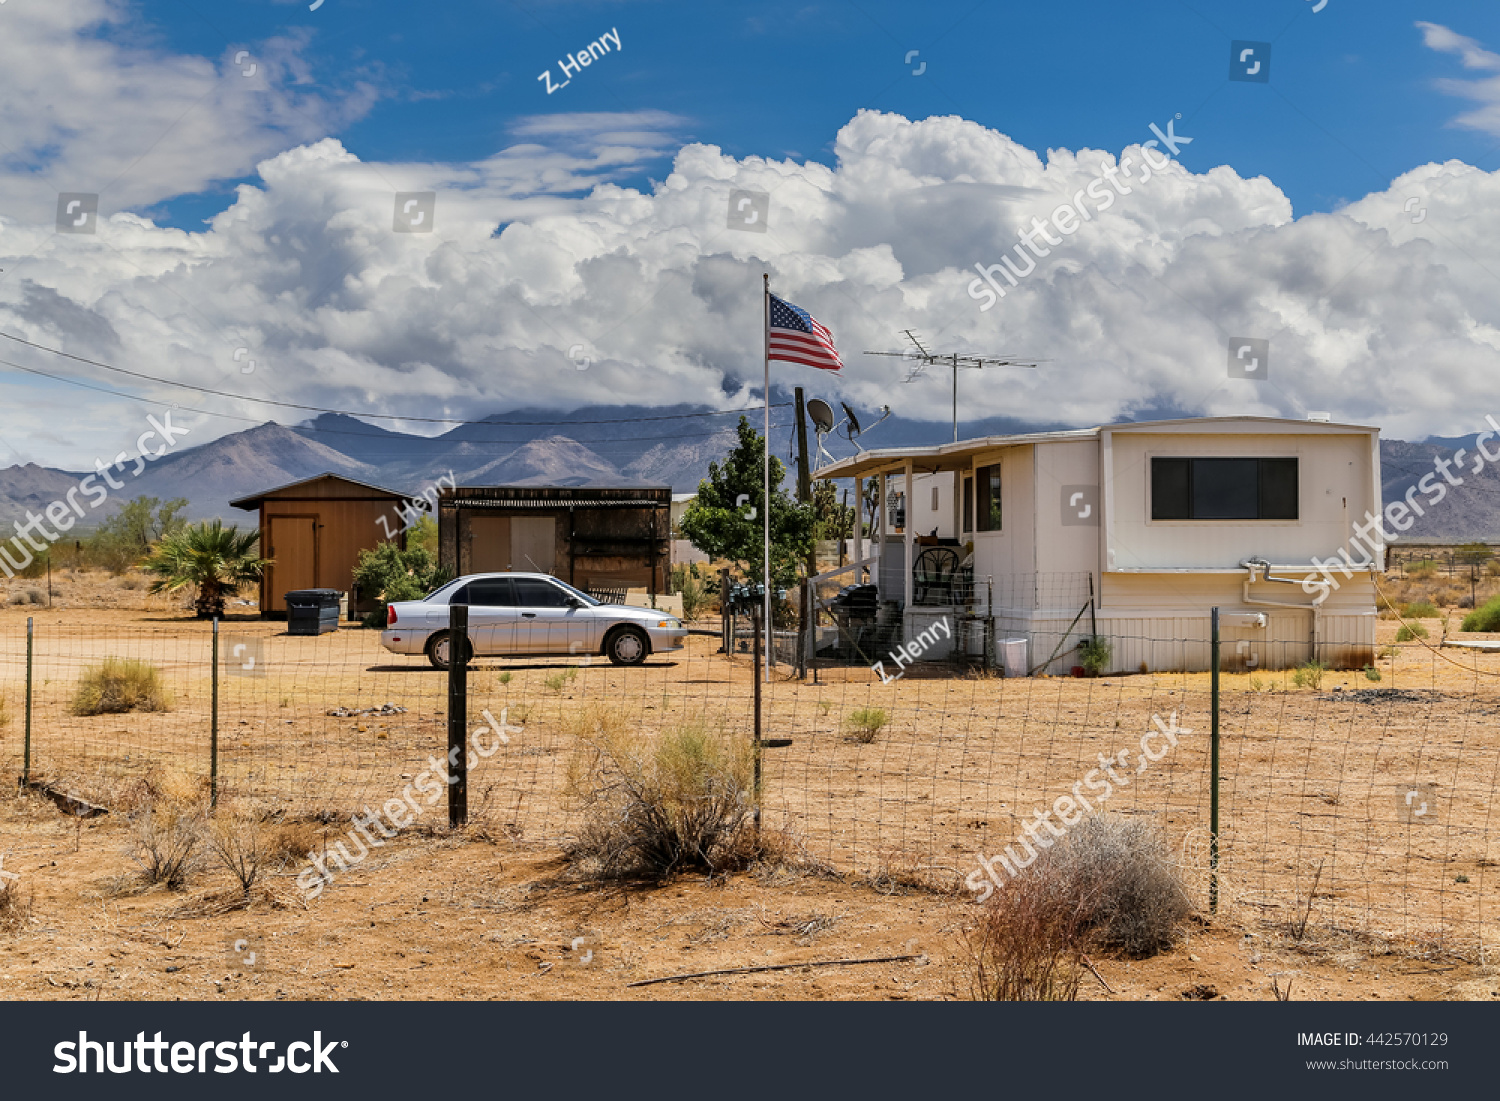 Simple isolated american house along desert stock photo for Simple american house